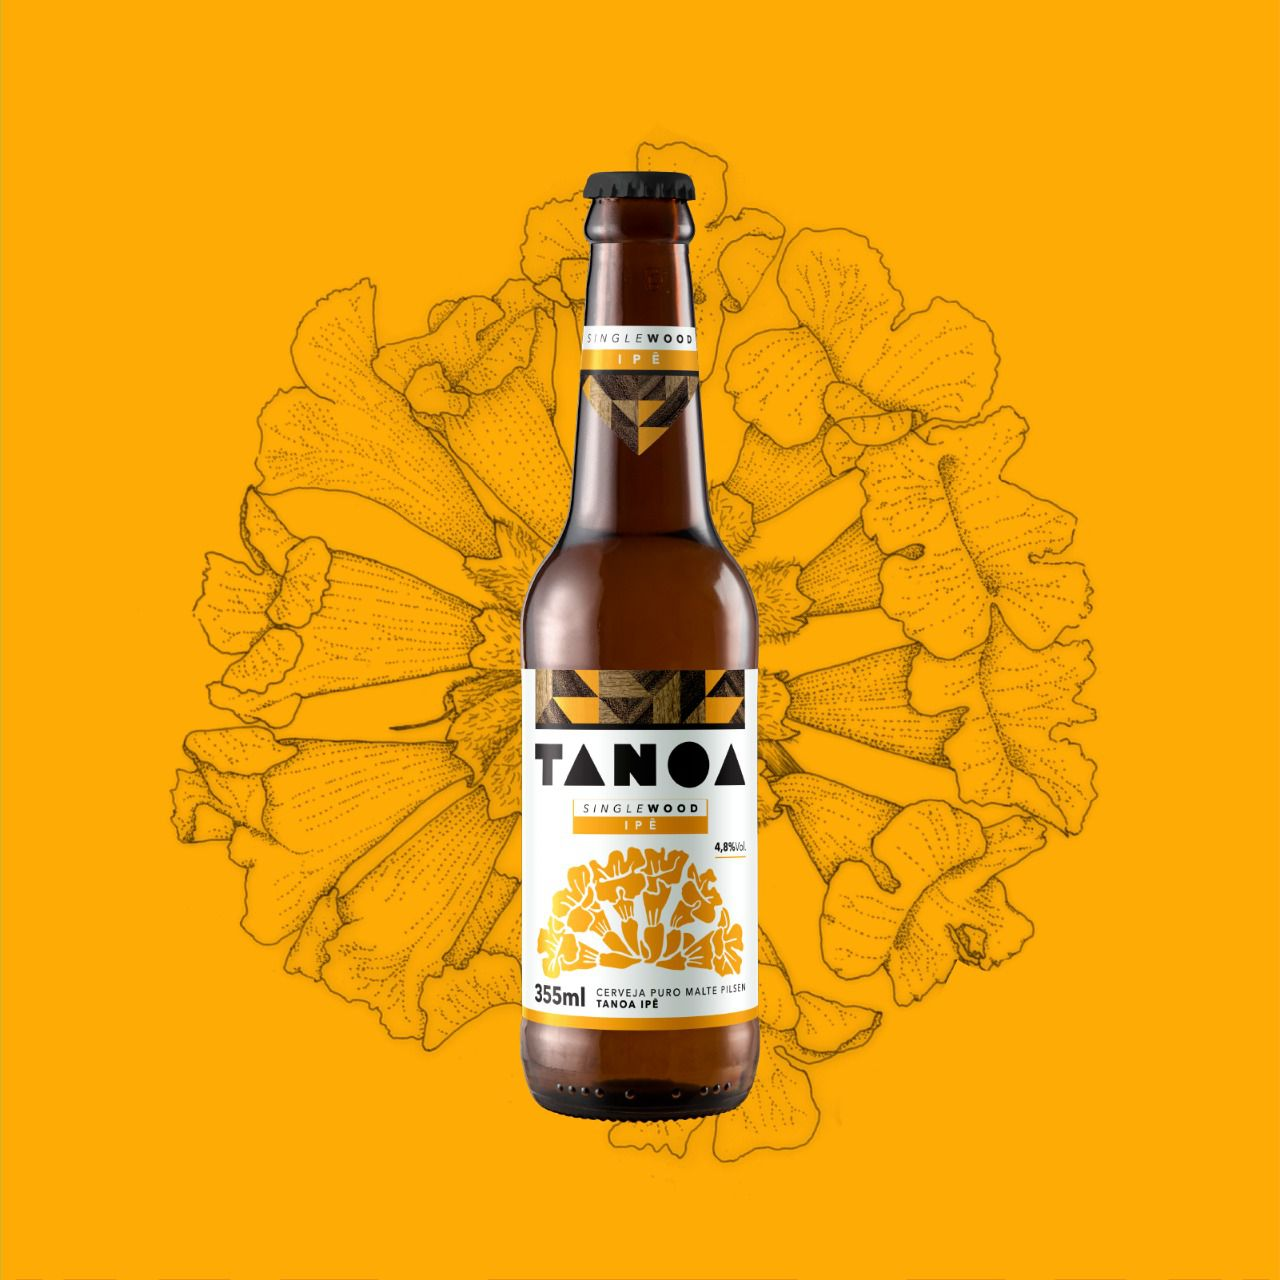 Cerveja Artesanal Tanoa Pilsen - Single Wood: Ipê - 355 ml